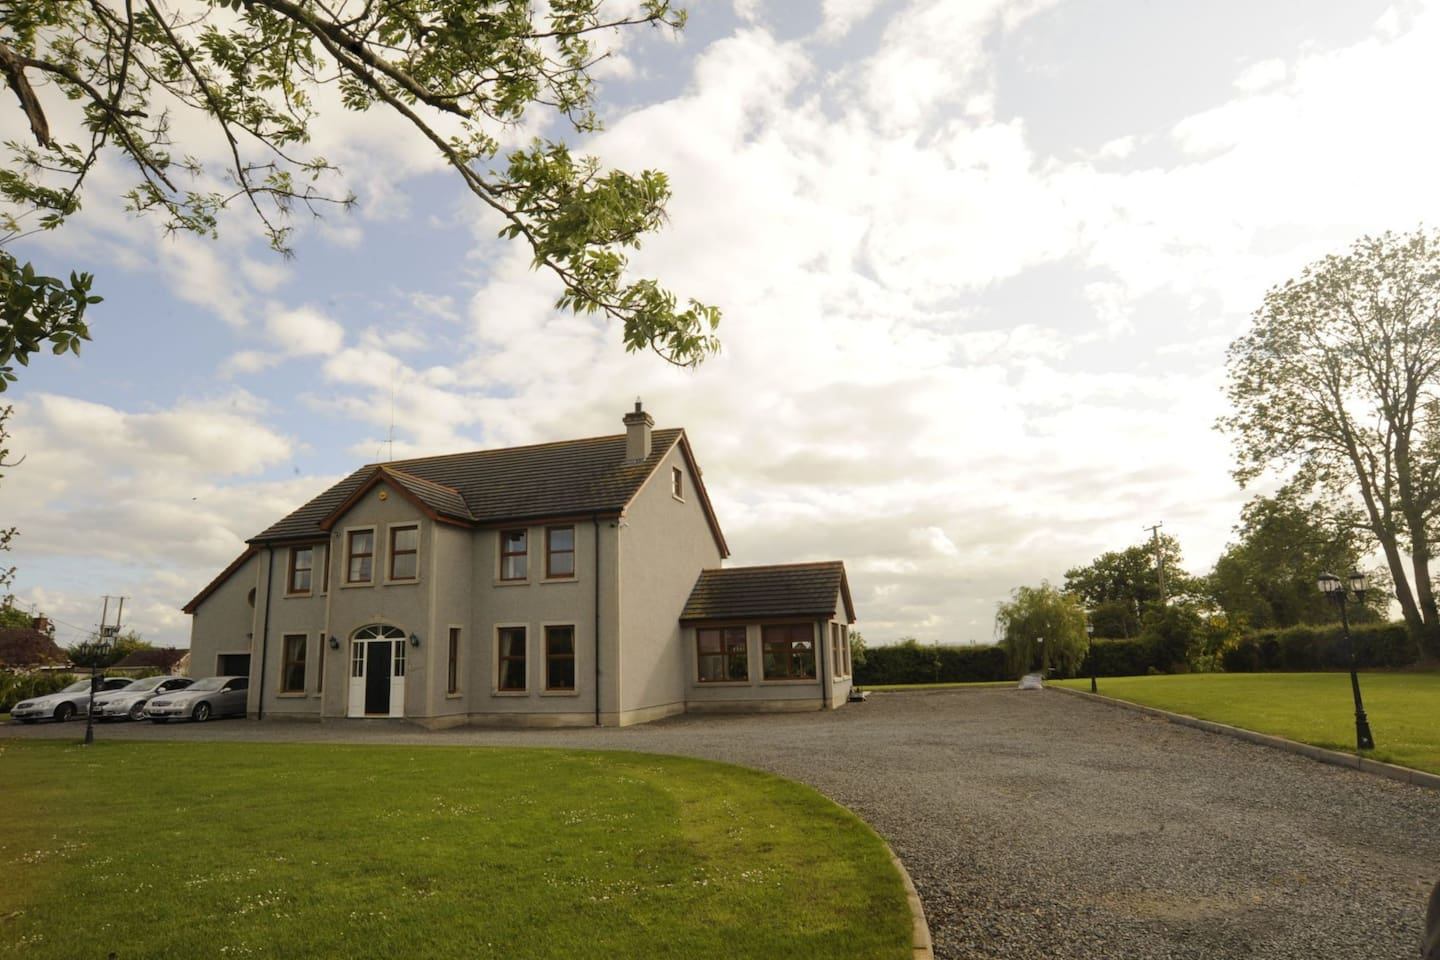 """Knockalla"" is a luxury, spacious newly built 4 bedroom house, located a few miles outside Portadown and Lurgan close to Motorway (M1) Junctions and 10 minutes from the Banbridge Junction of the A1,"